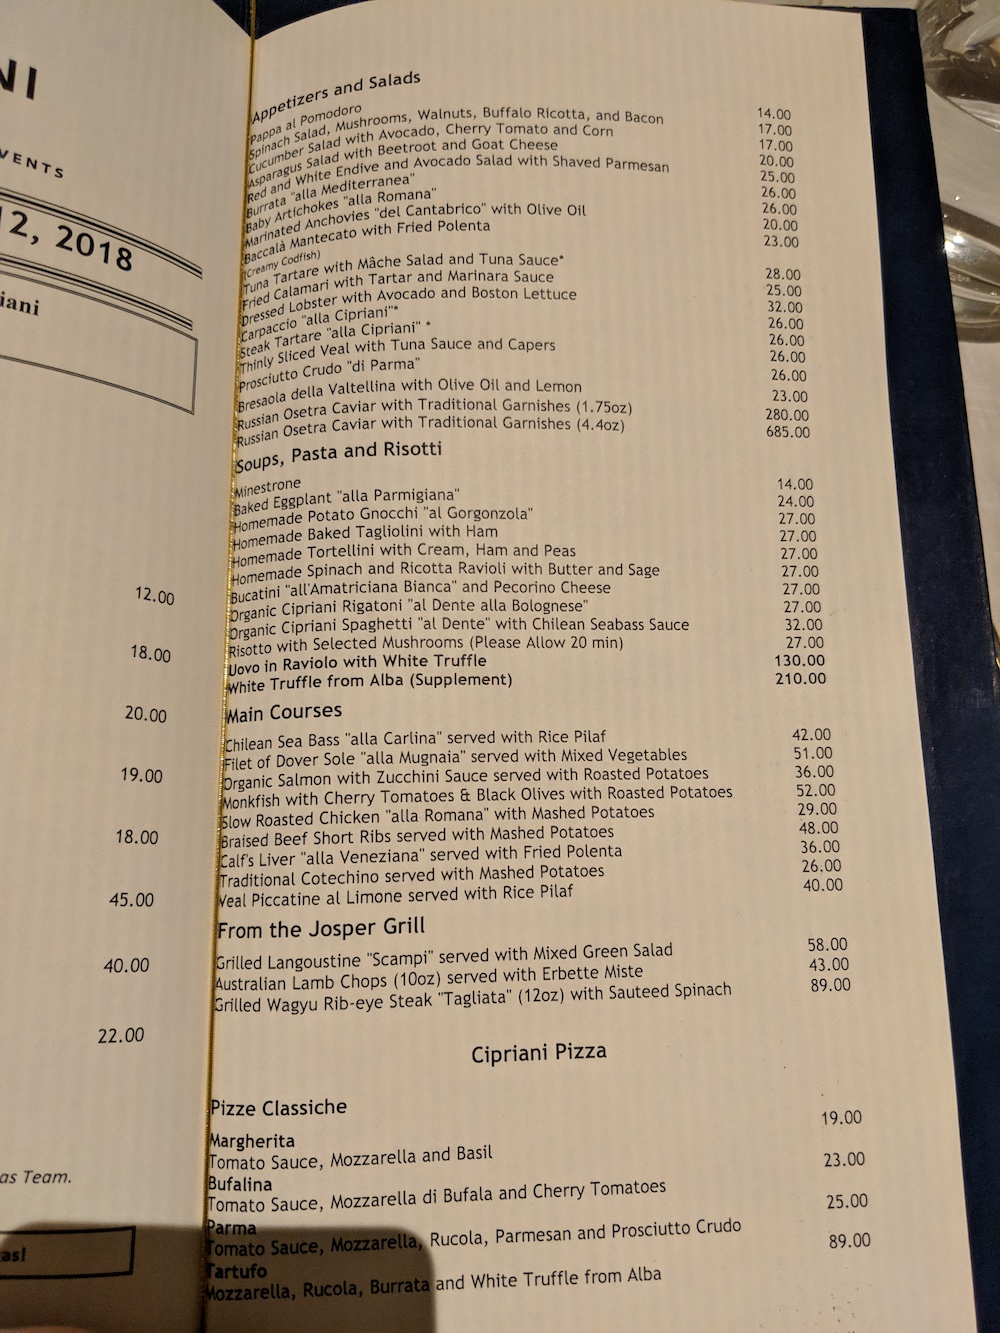 Cipriani Menu - Ask for Guidance